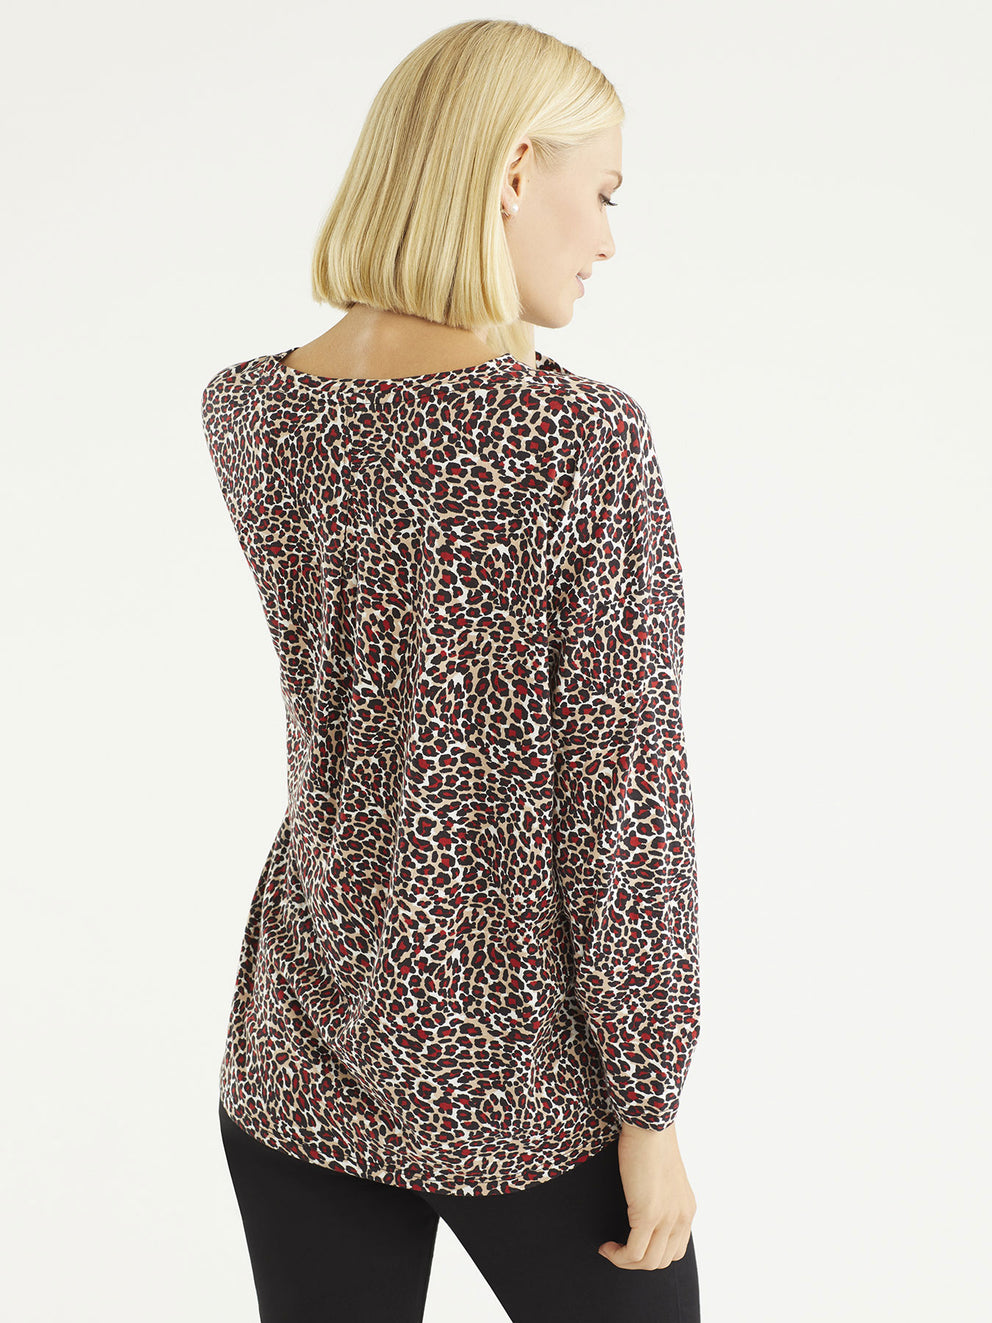 The Jones New York Leopard Print Scrunch Sleeve Jersey in color Mini Leopard Print - Image Position 3